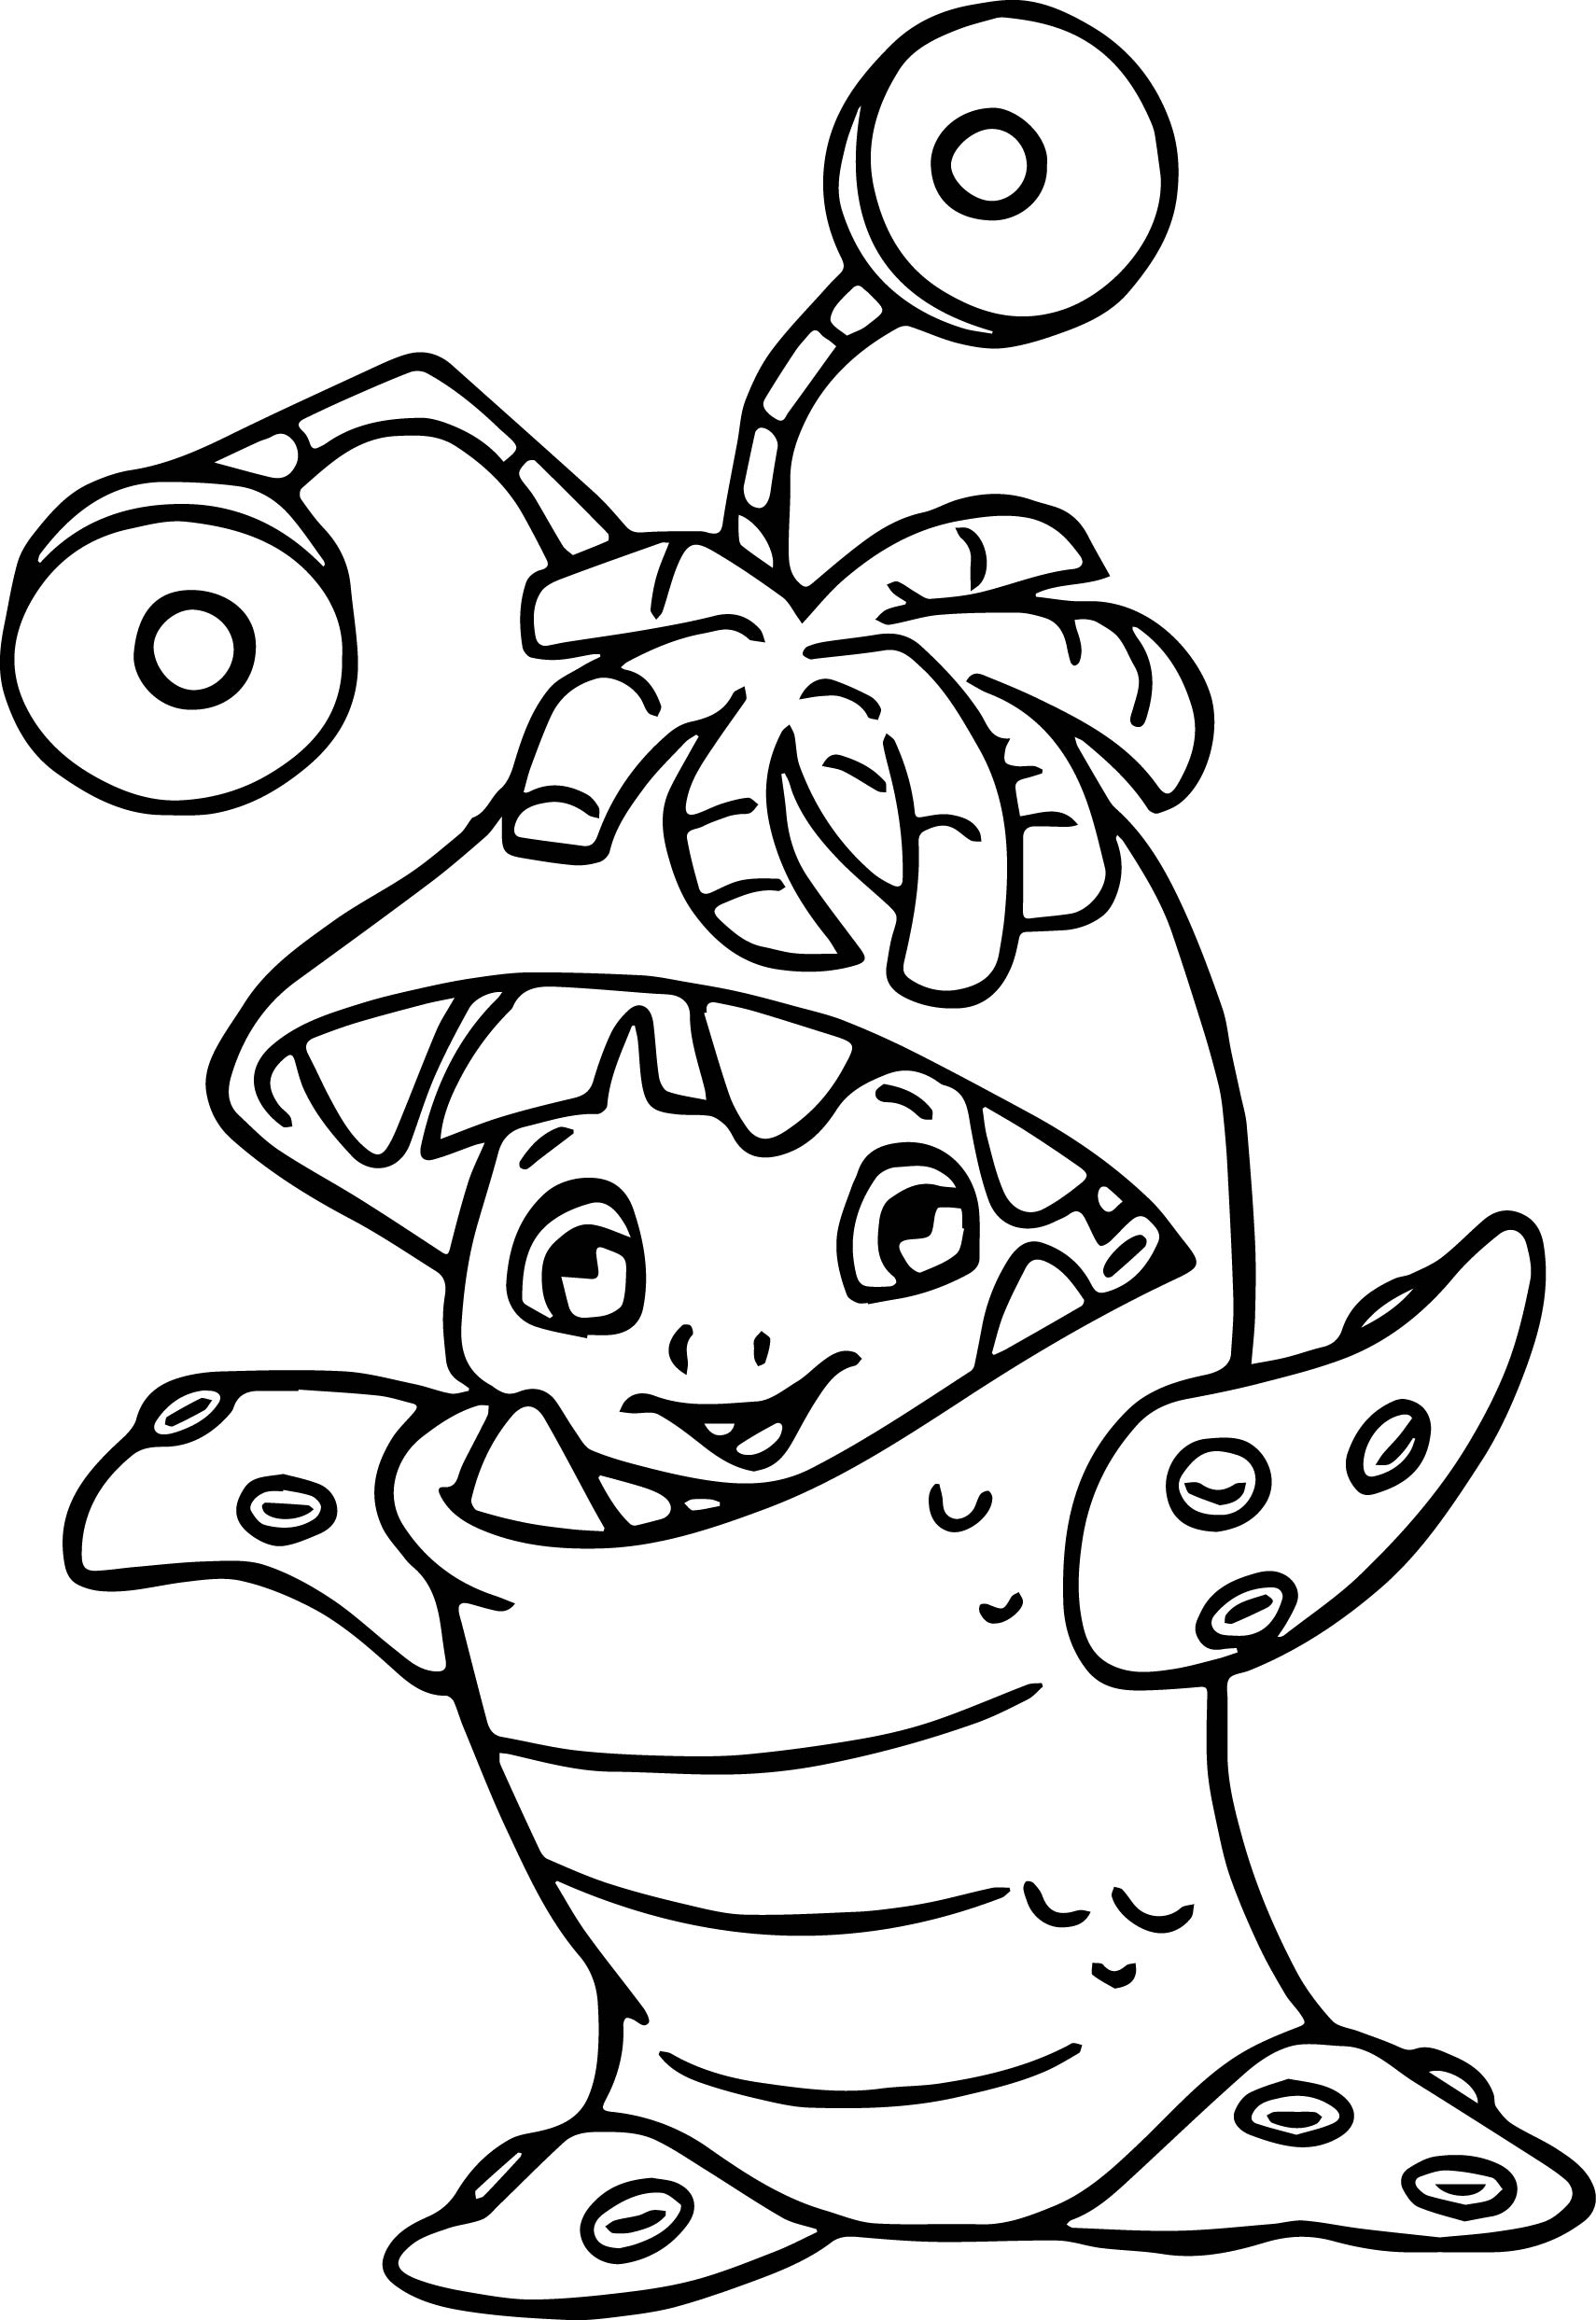 monsters inc coloring pages - disney monsters inc coloring pages